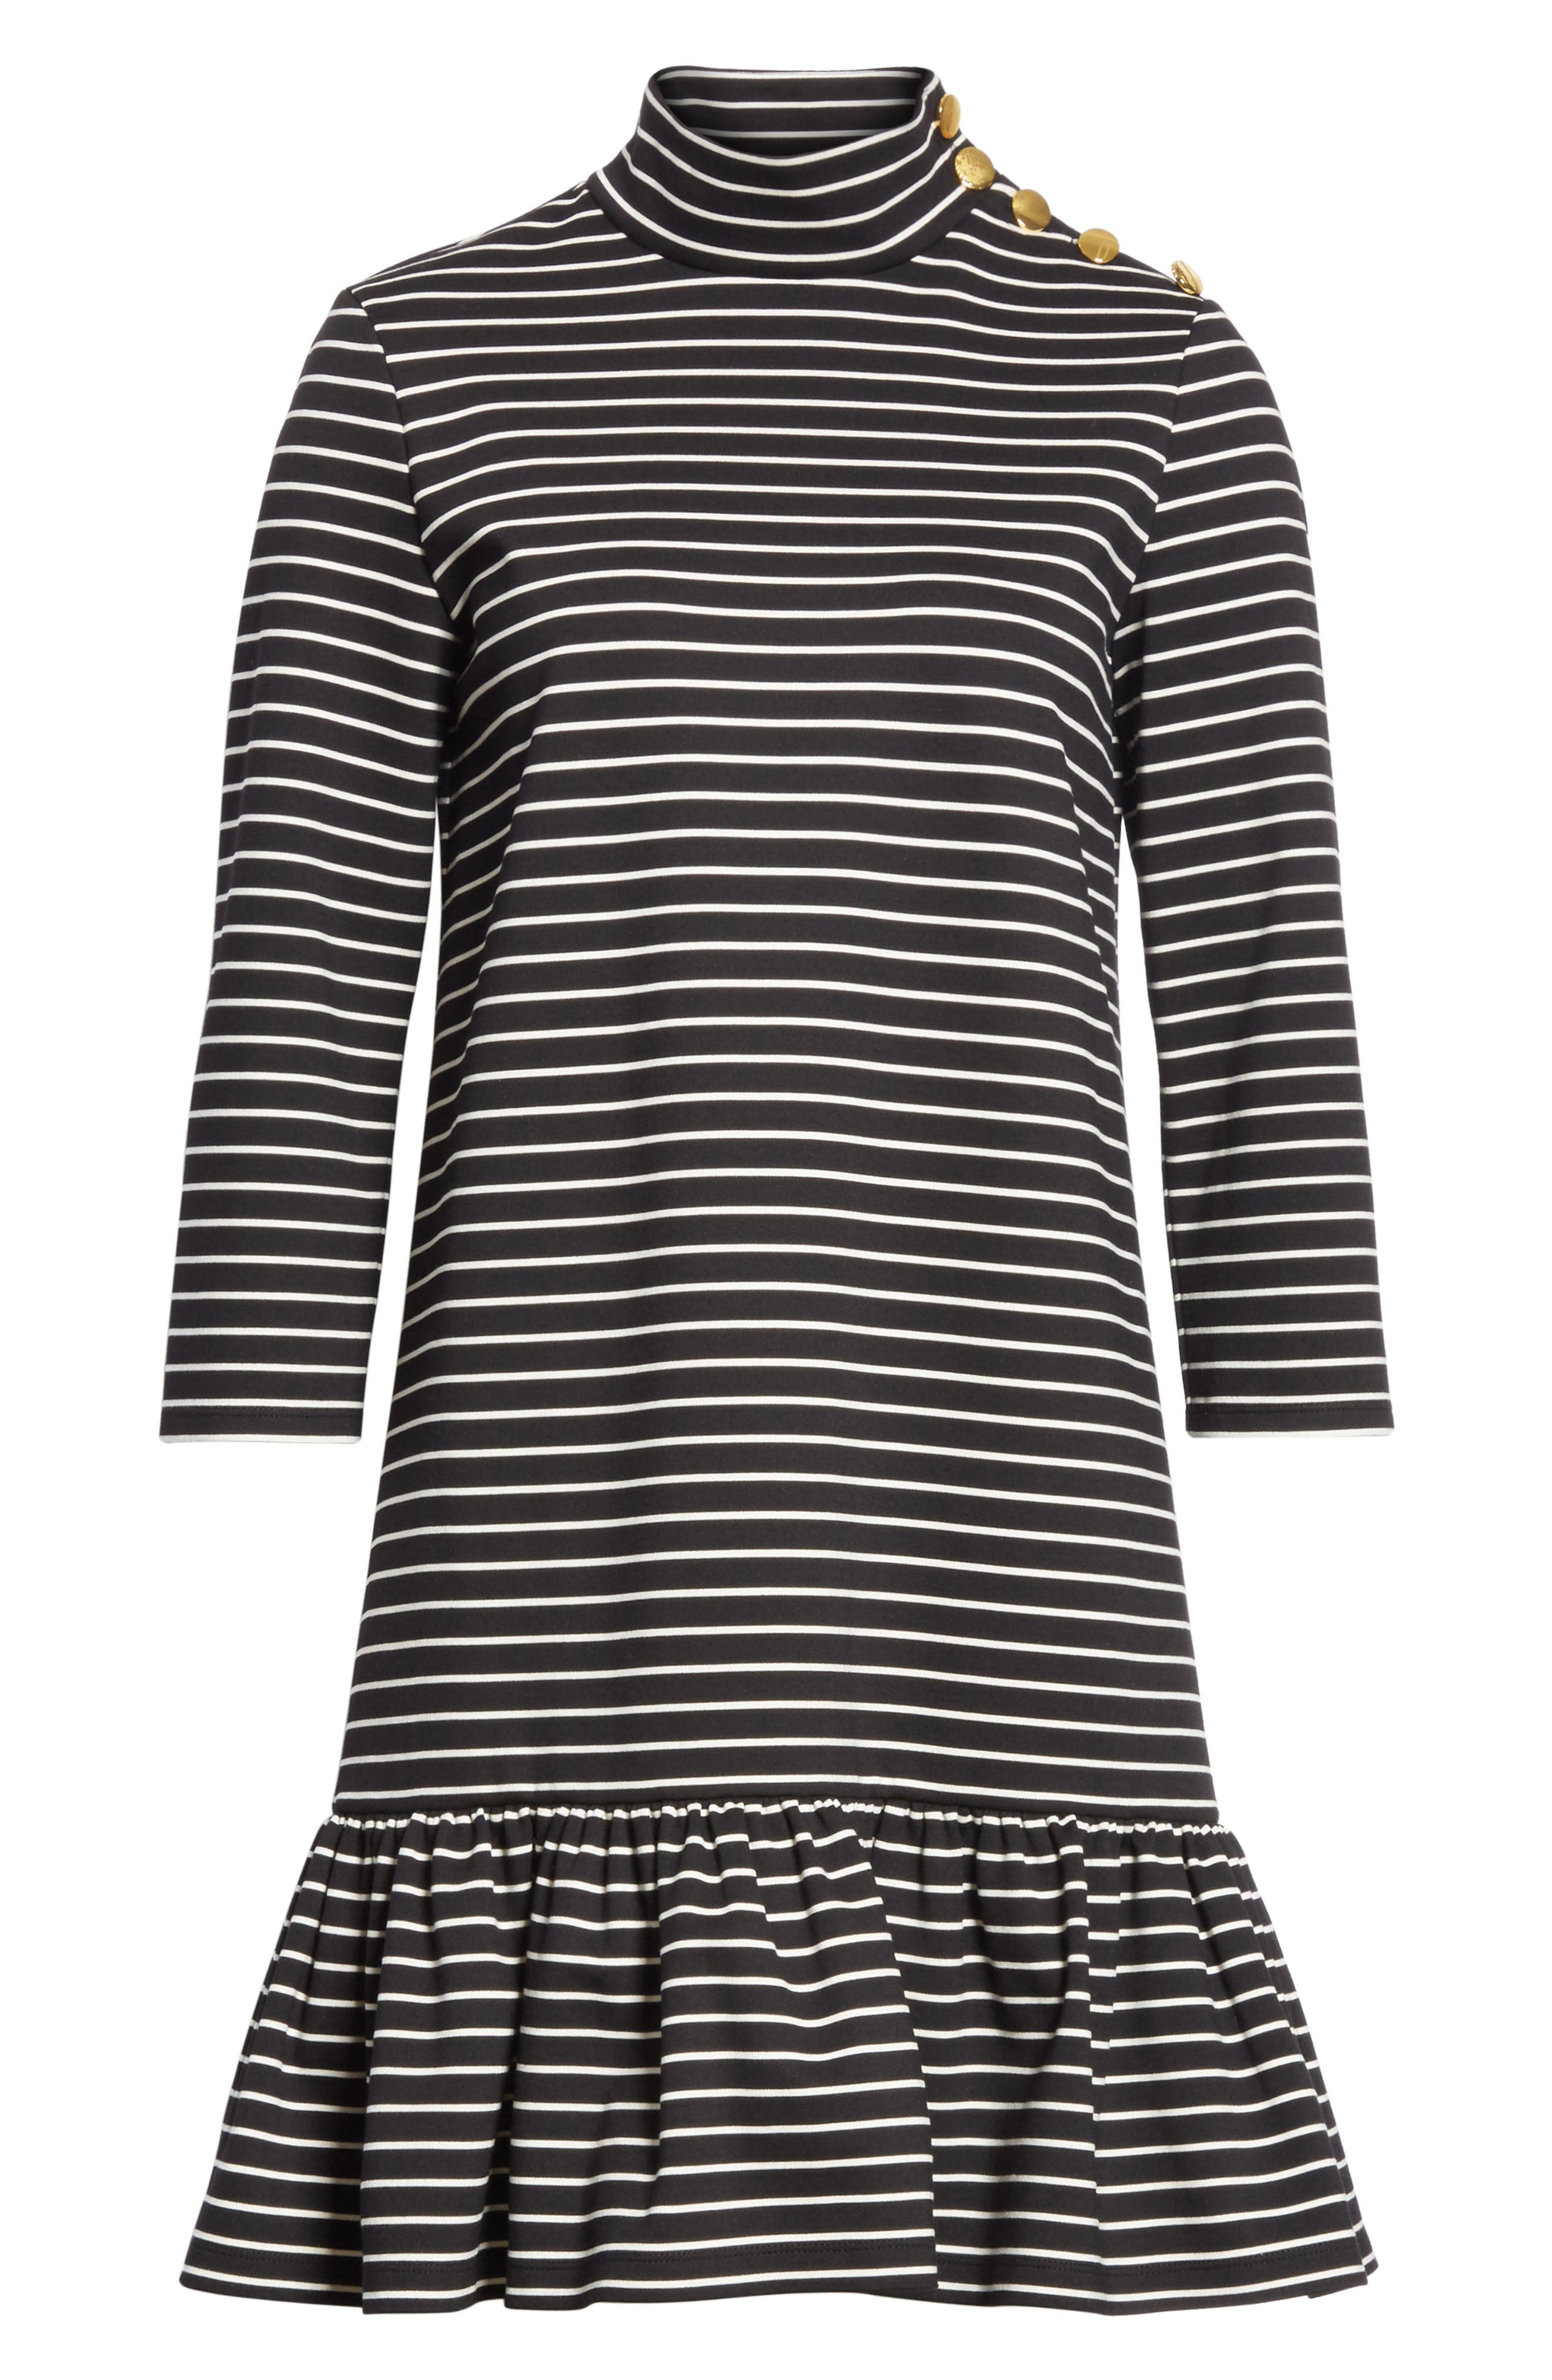 mock neck stripe knit dress,                             Alternate thumbnail 6, color,                             001